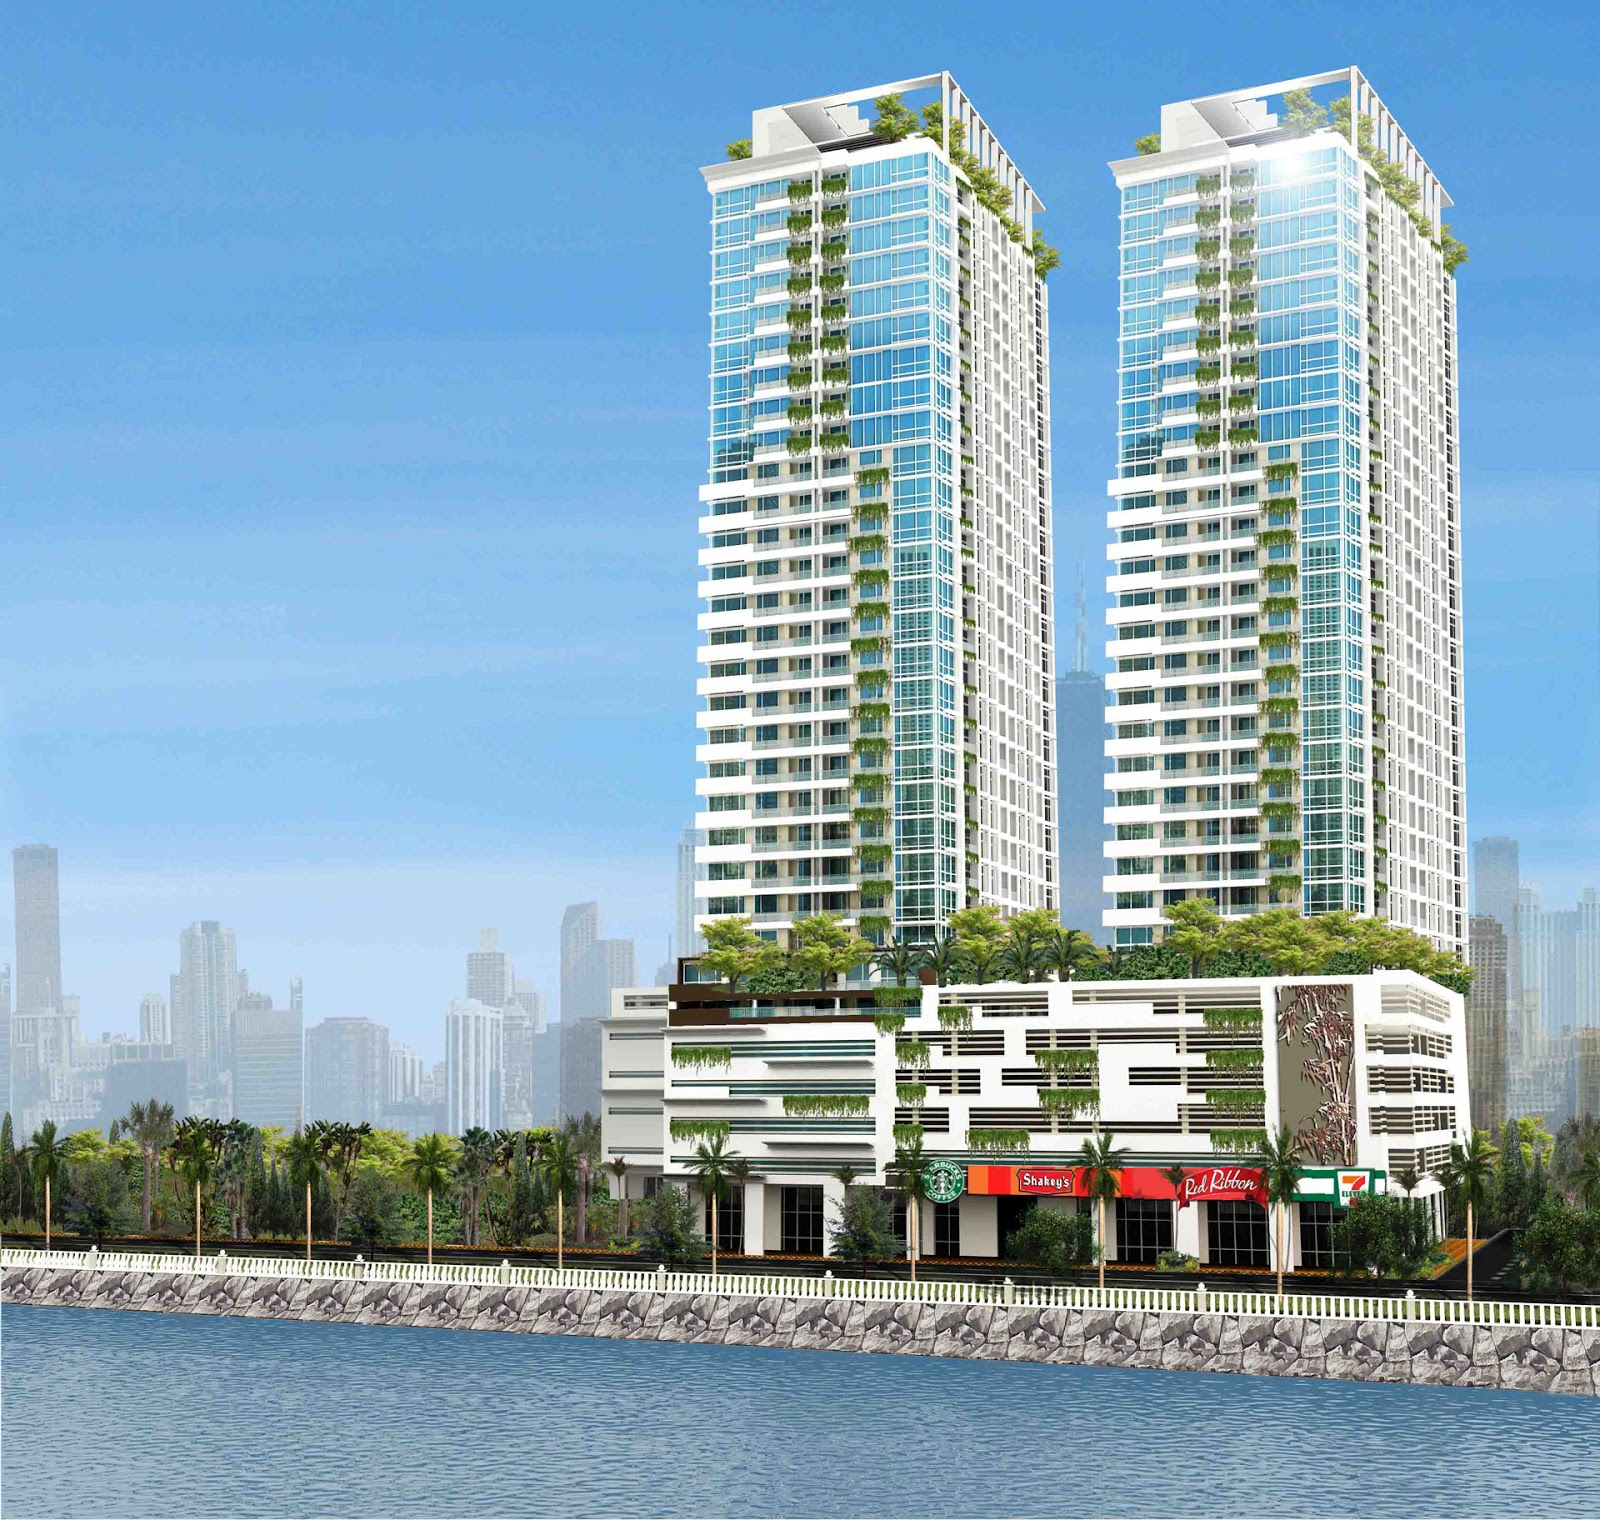 Condominium: Affordable Property Listing Of The Philippines: Four